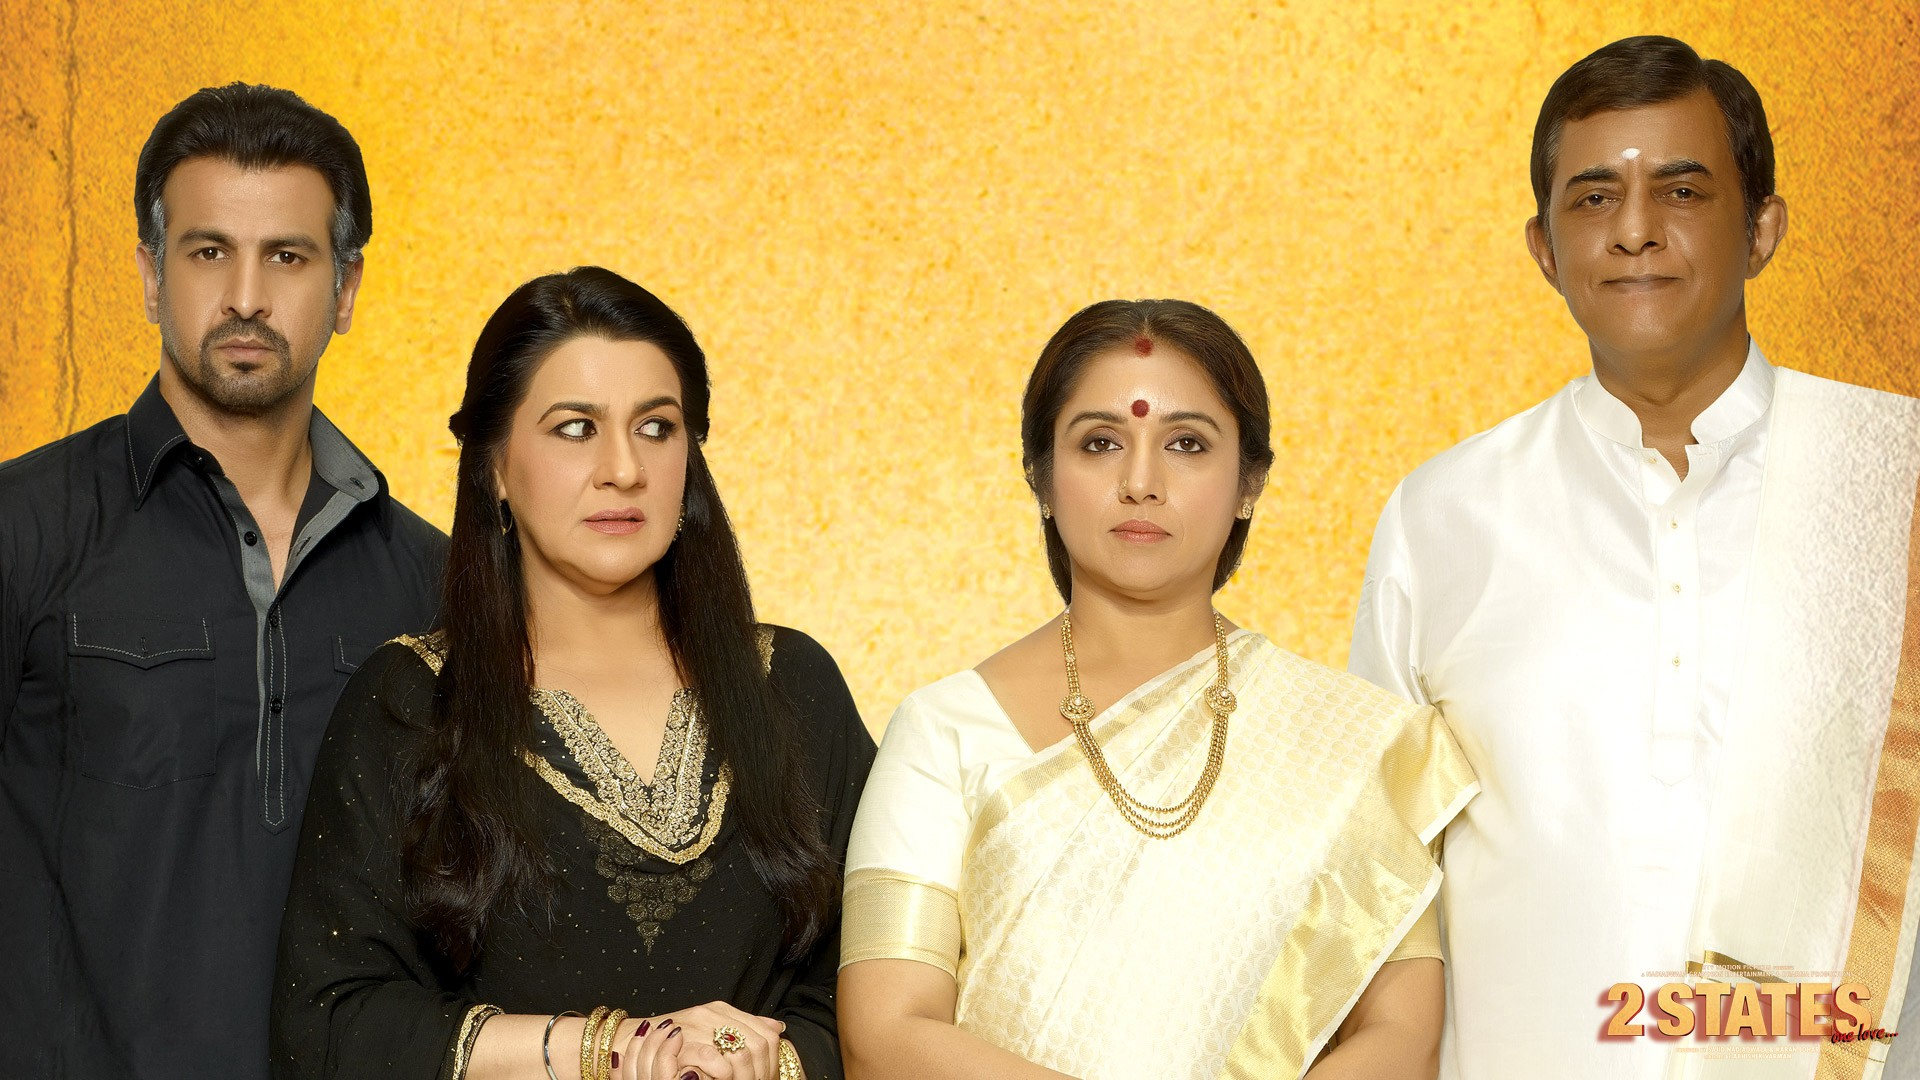 oppo-9-2-states-parents-annoyed-dilike